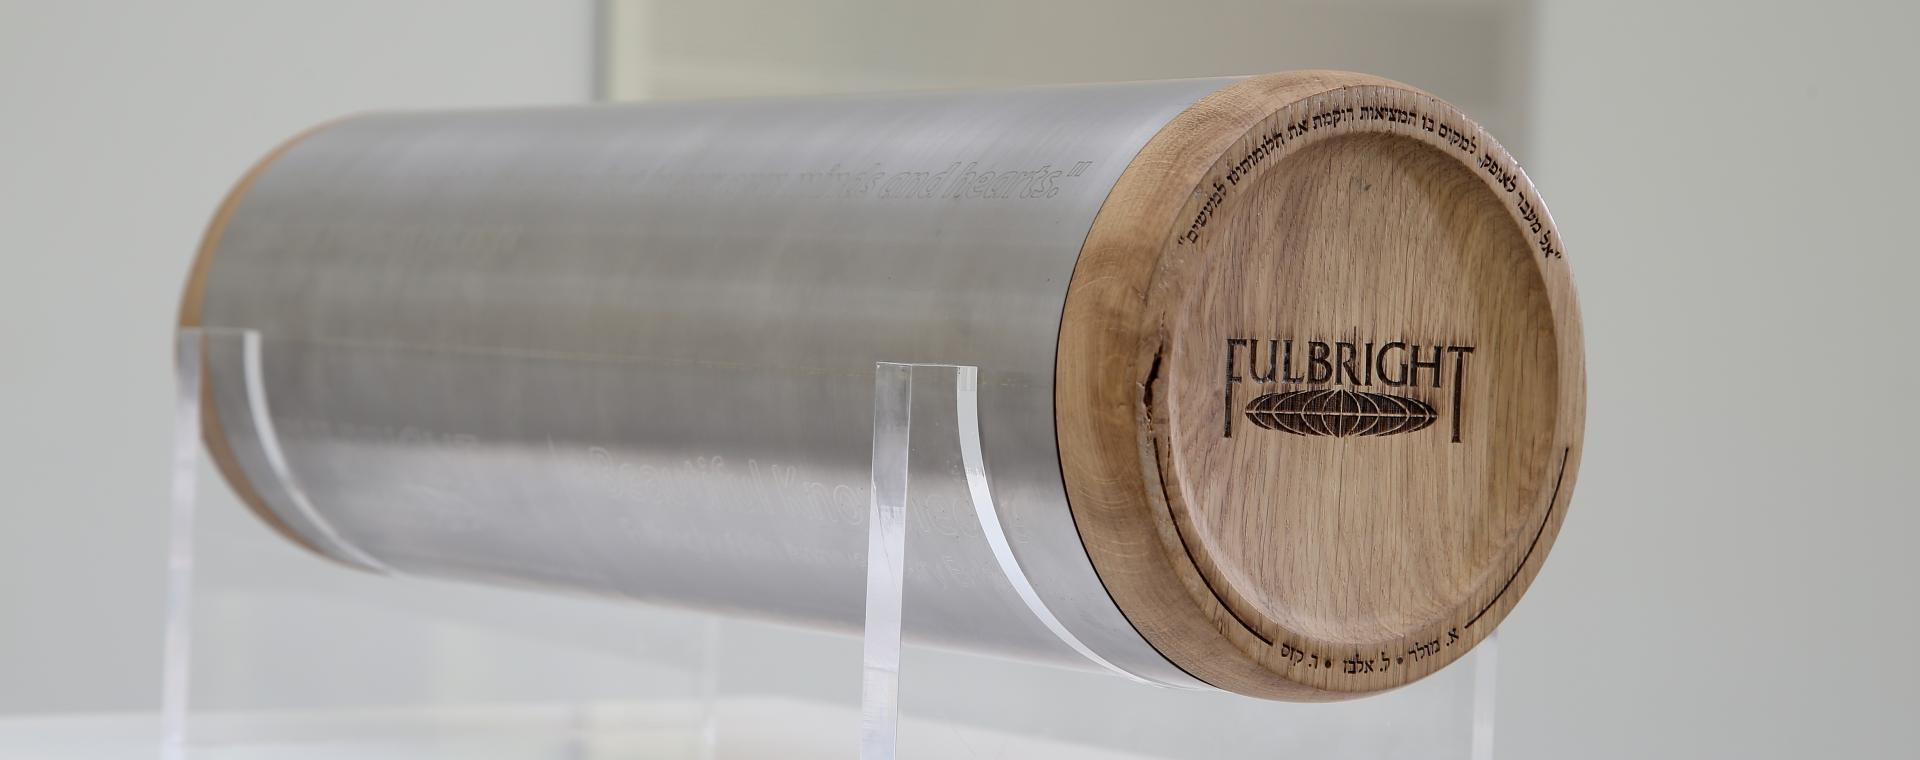 Fulbright capsule